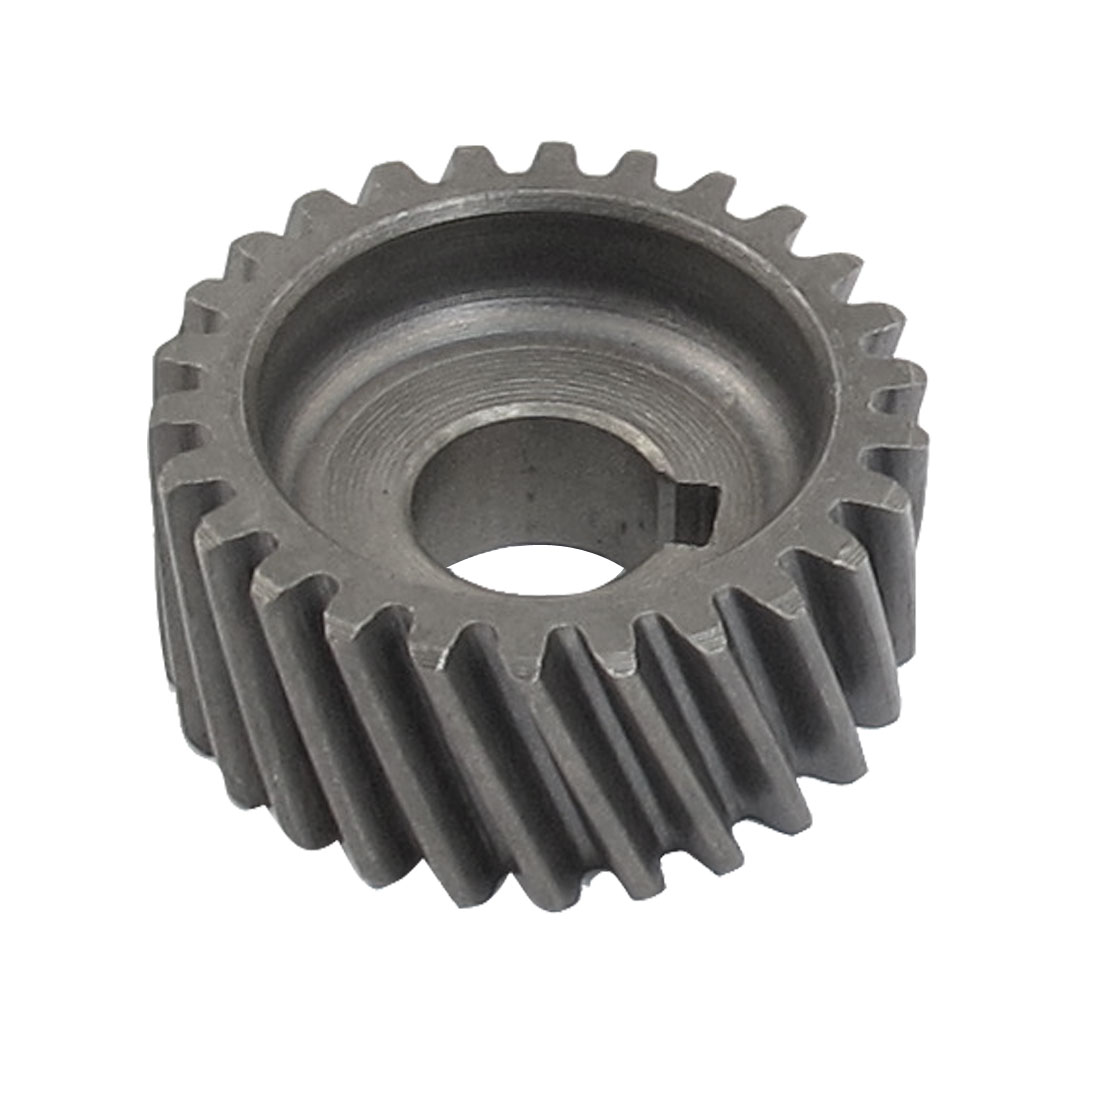 16mm Width Repair Replacement Electric Power Tool Gear Wheel